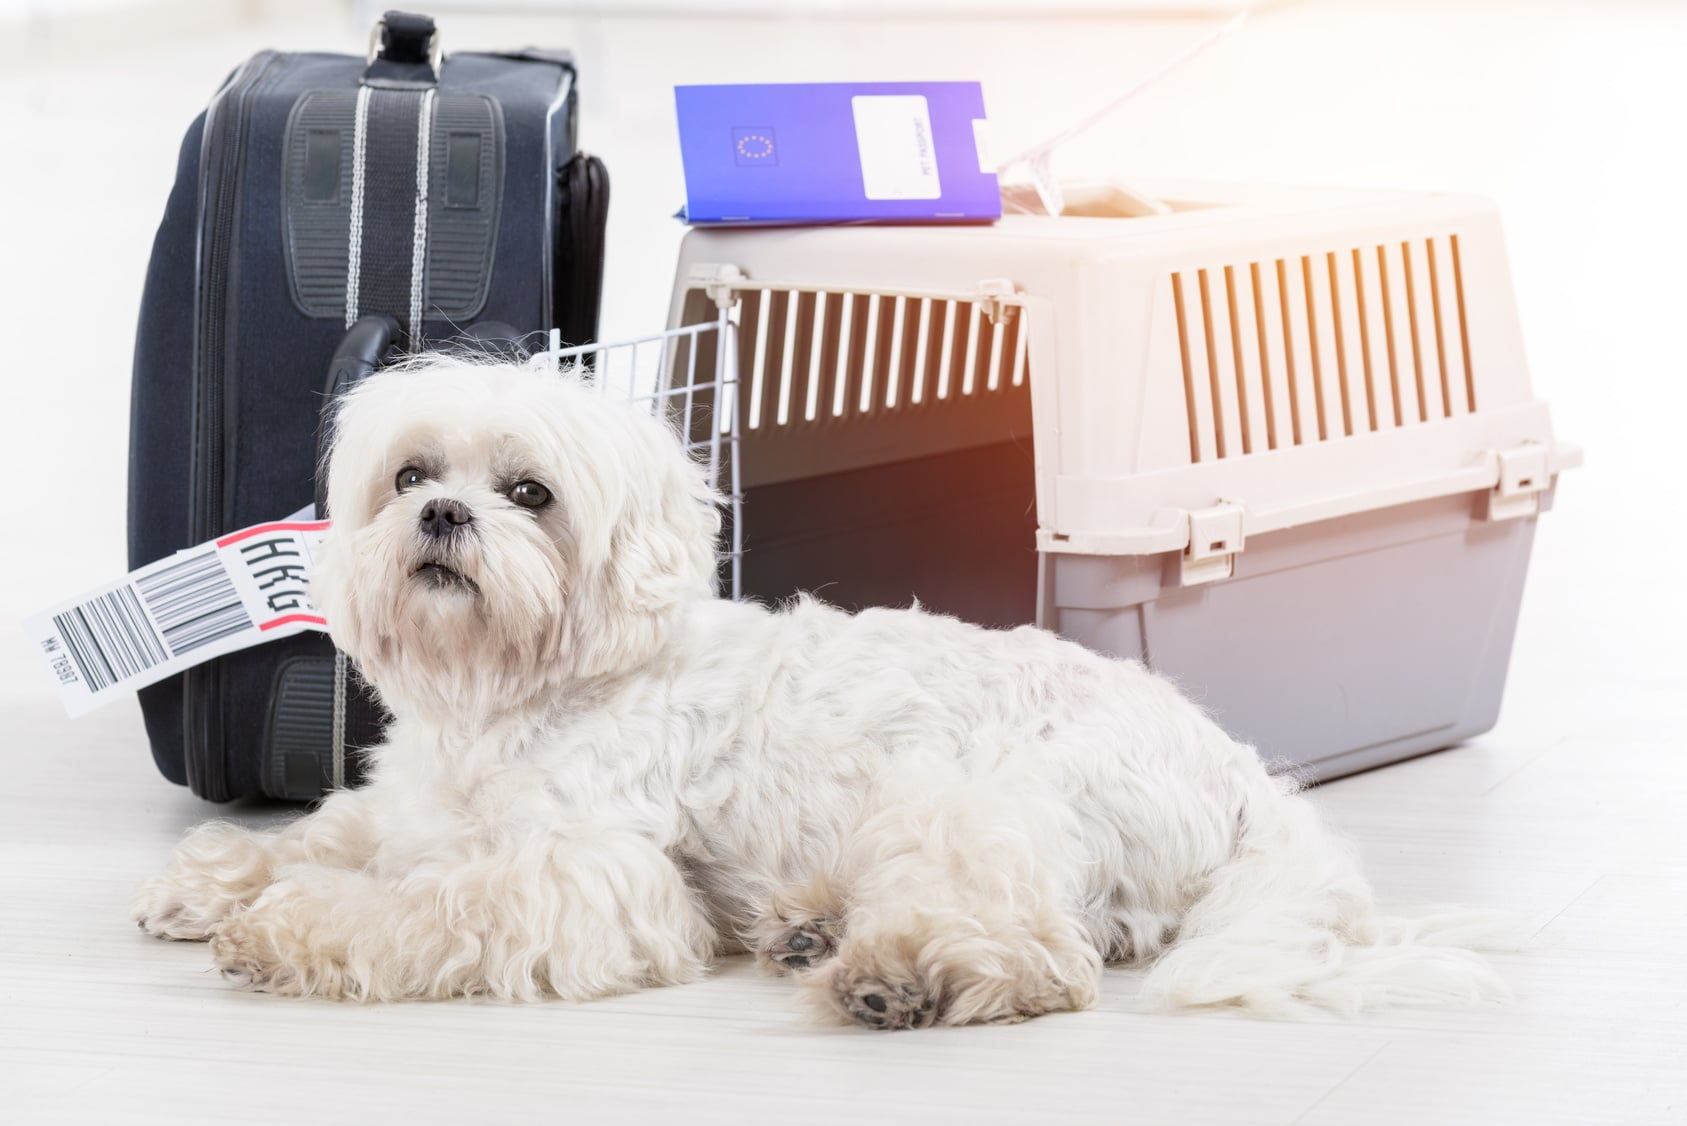 Pet Travel – Moving to Malta With Your Pet